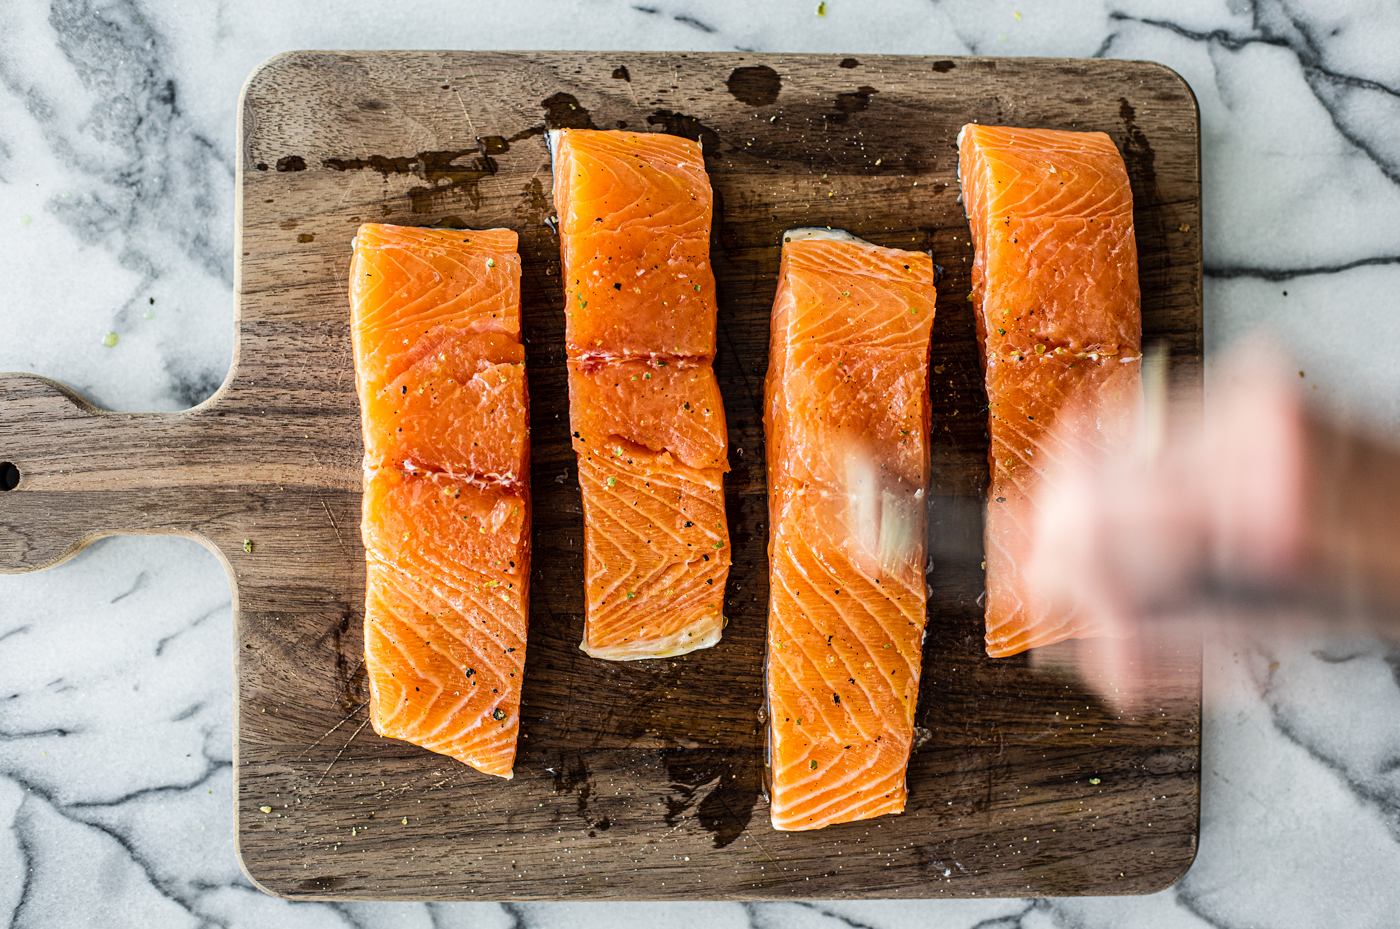 Overhead shot of fillets of salmon being brushed with oil.